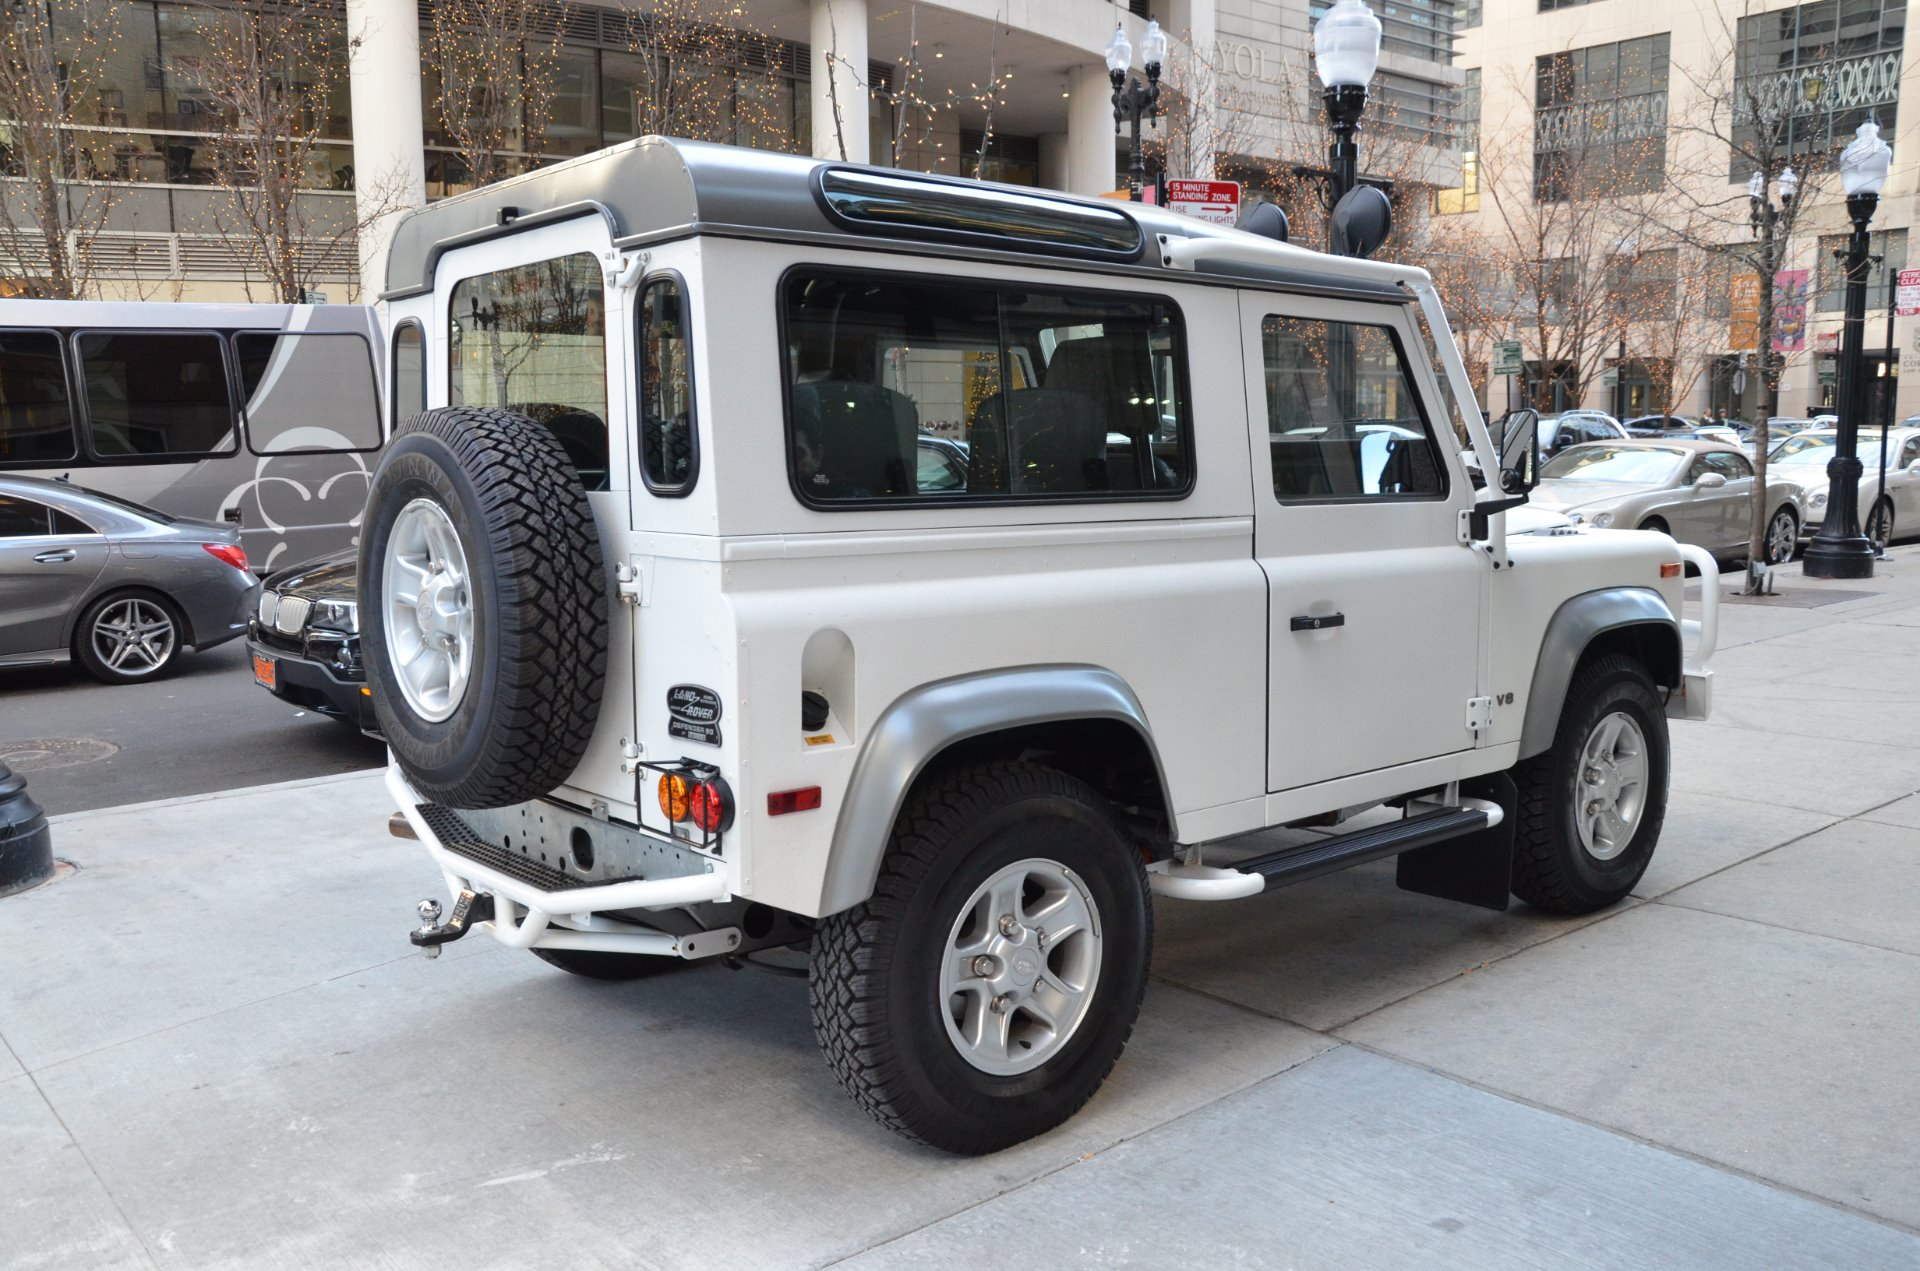 1997 Land Rover Defender 90 Stock GC TARIQ13 for sale near